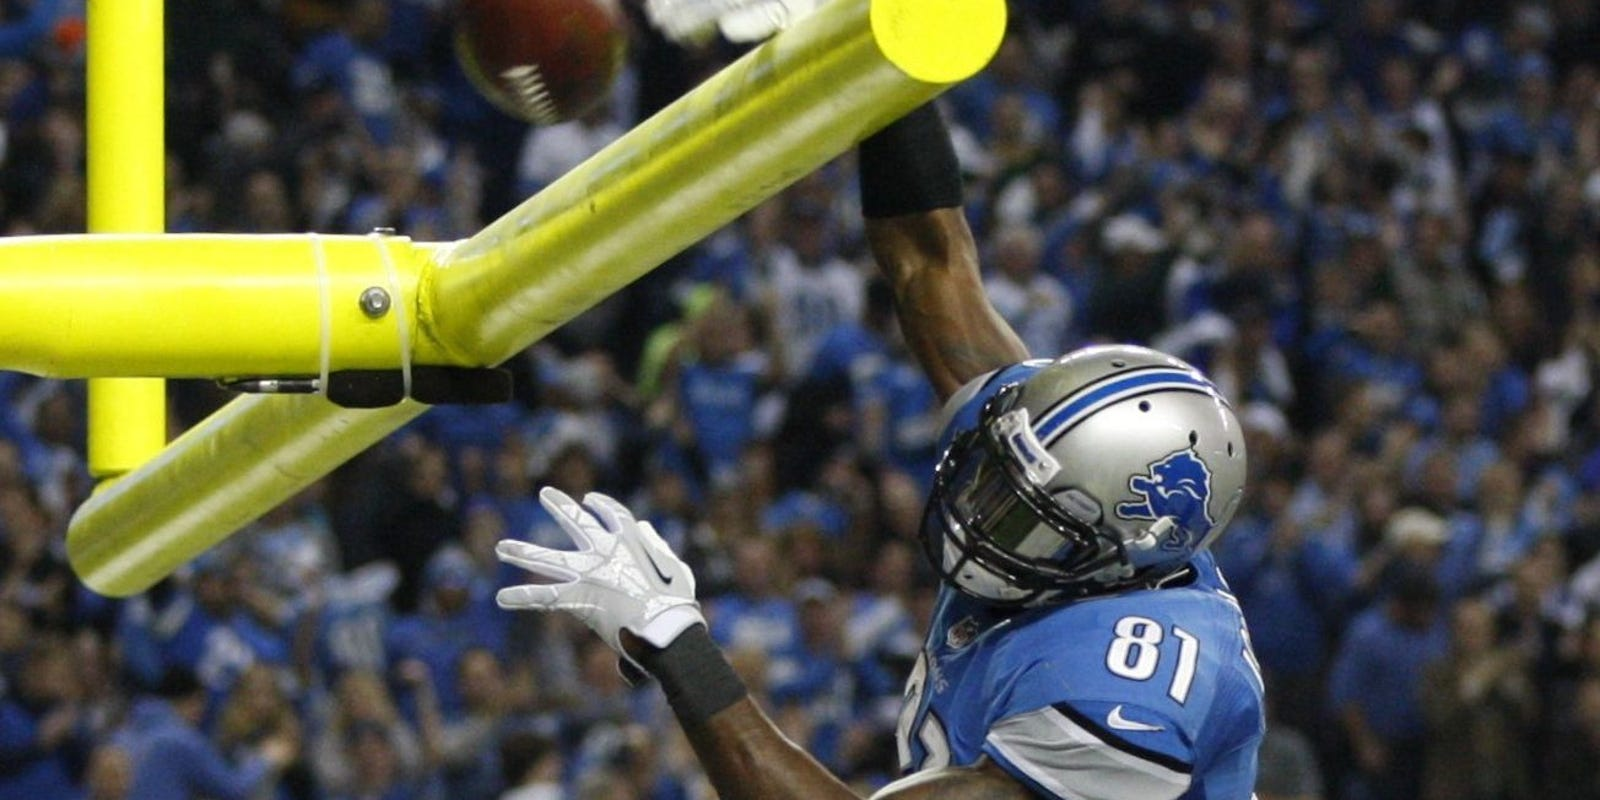 Calvin Johnson of the Detroit Lions reached the final of the Professional Football Hall of Fame